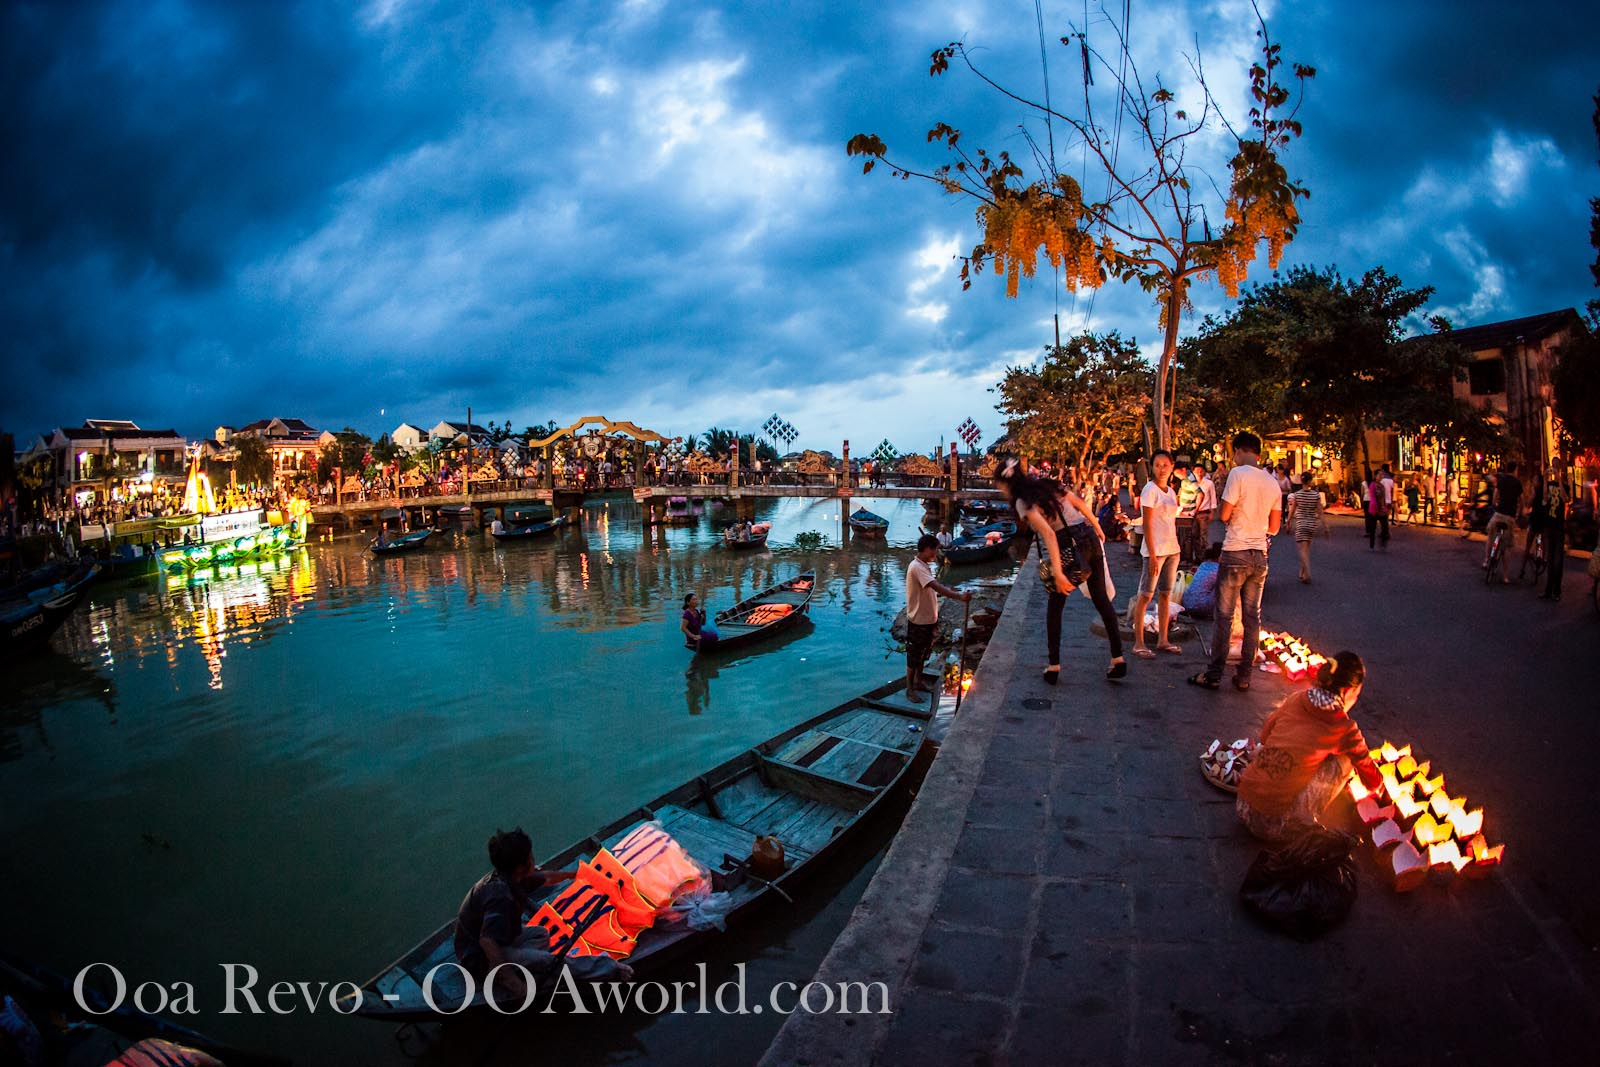 Hoi An Full Moon Lantern Festival Perfume River Photo Ooaworld